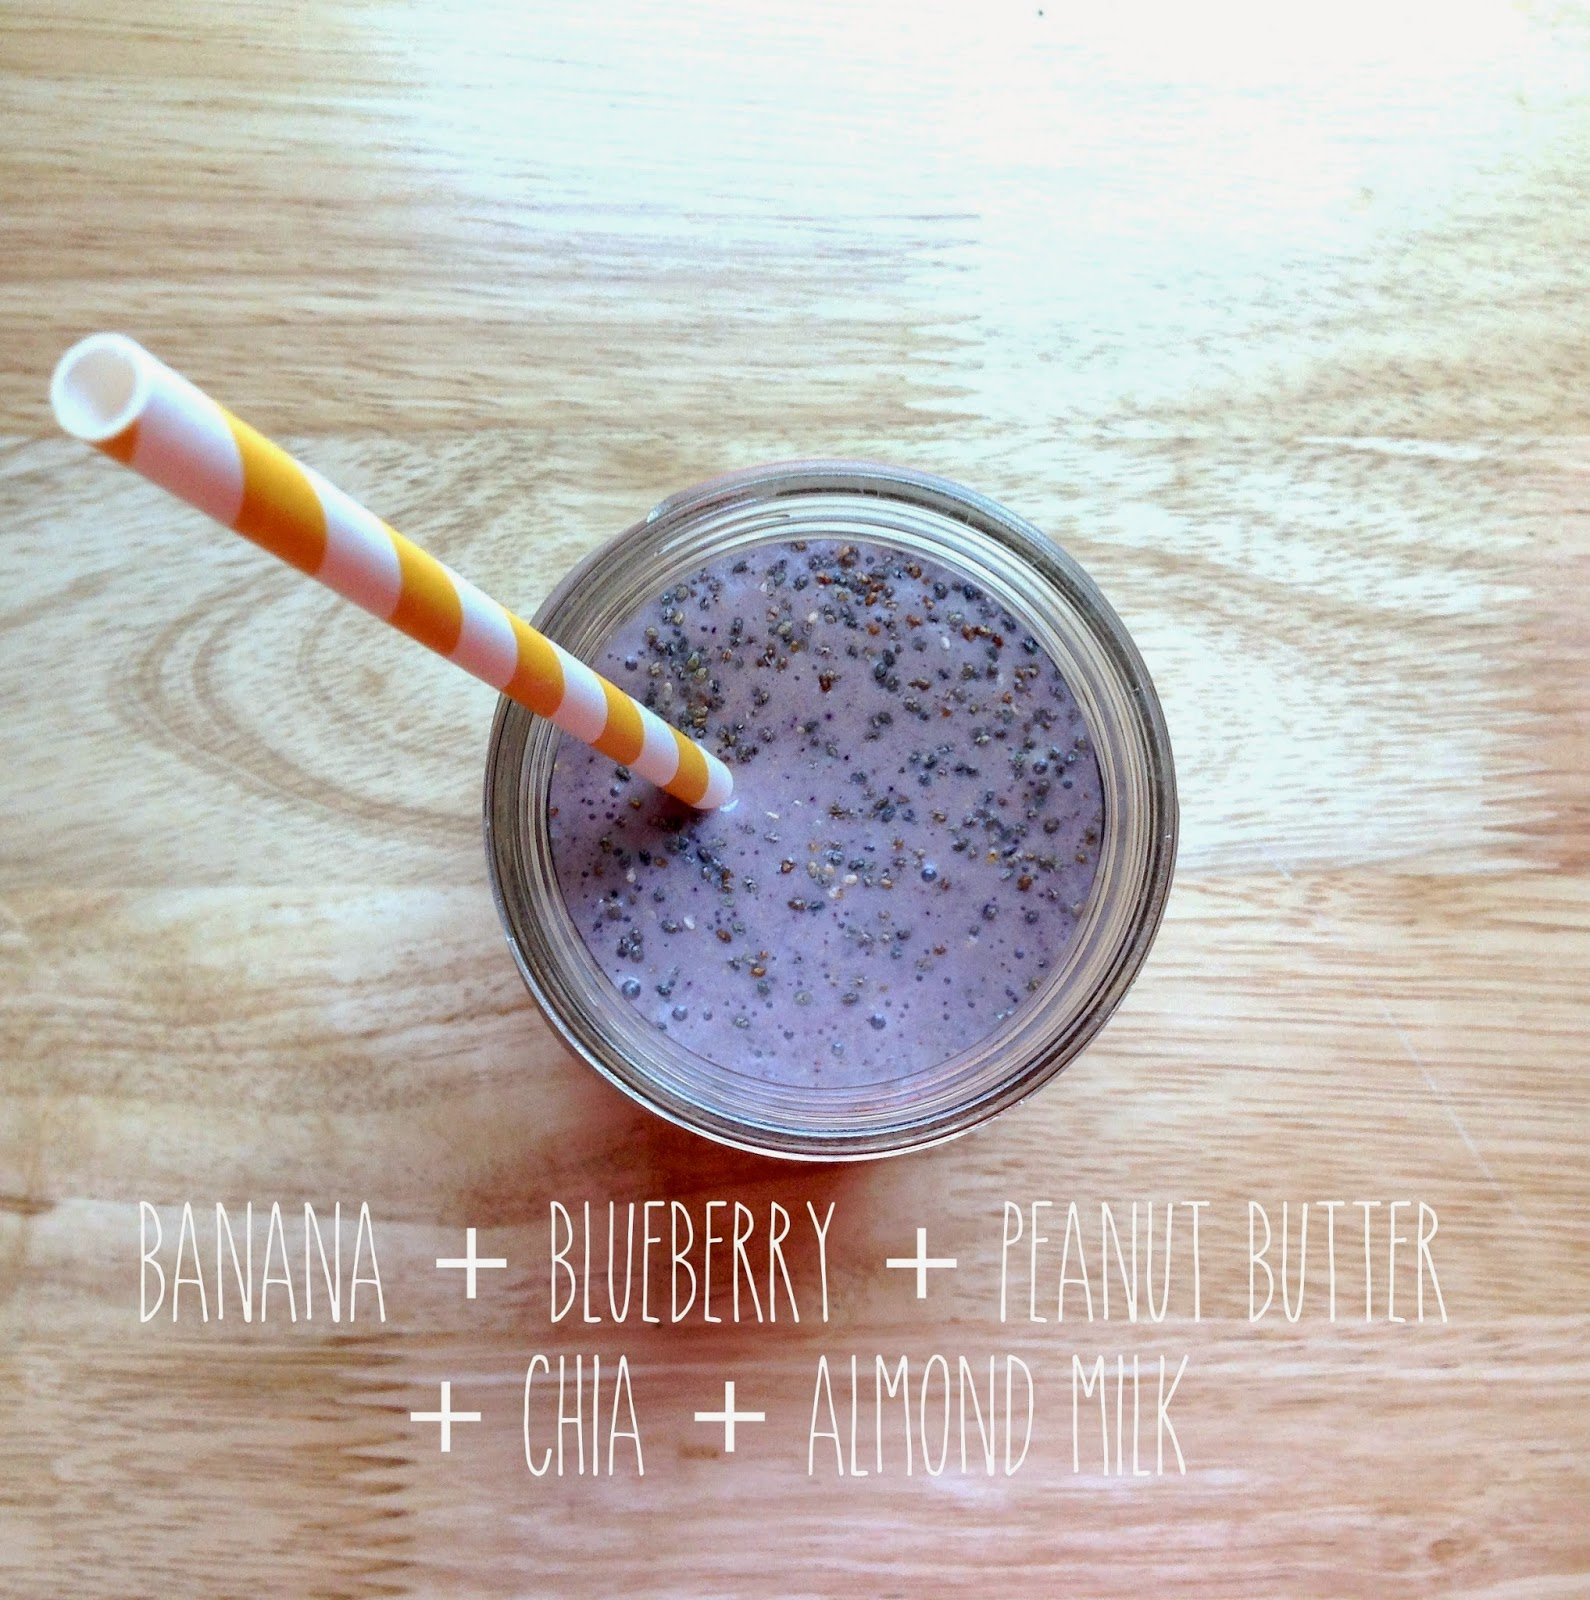 5 Easy Smoothie Recipes to Start Your Day